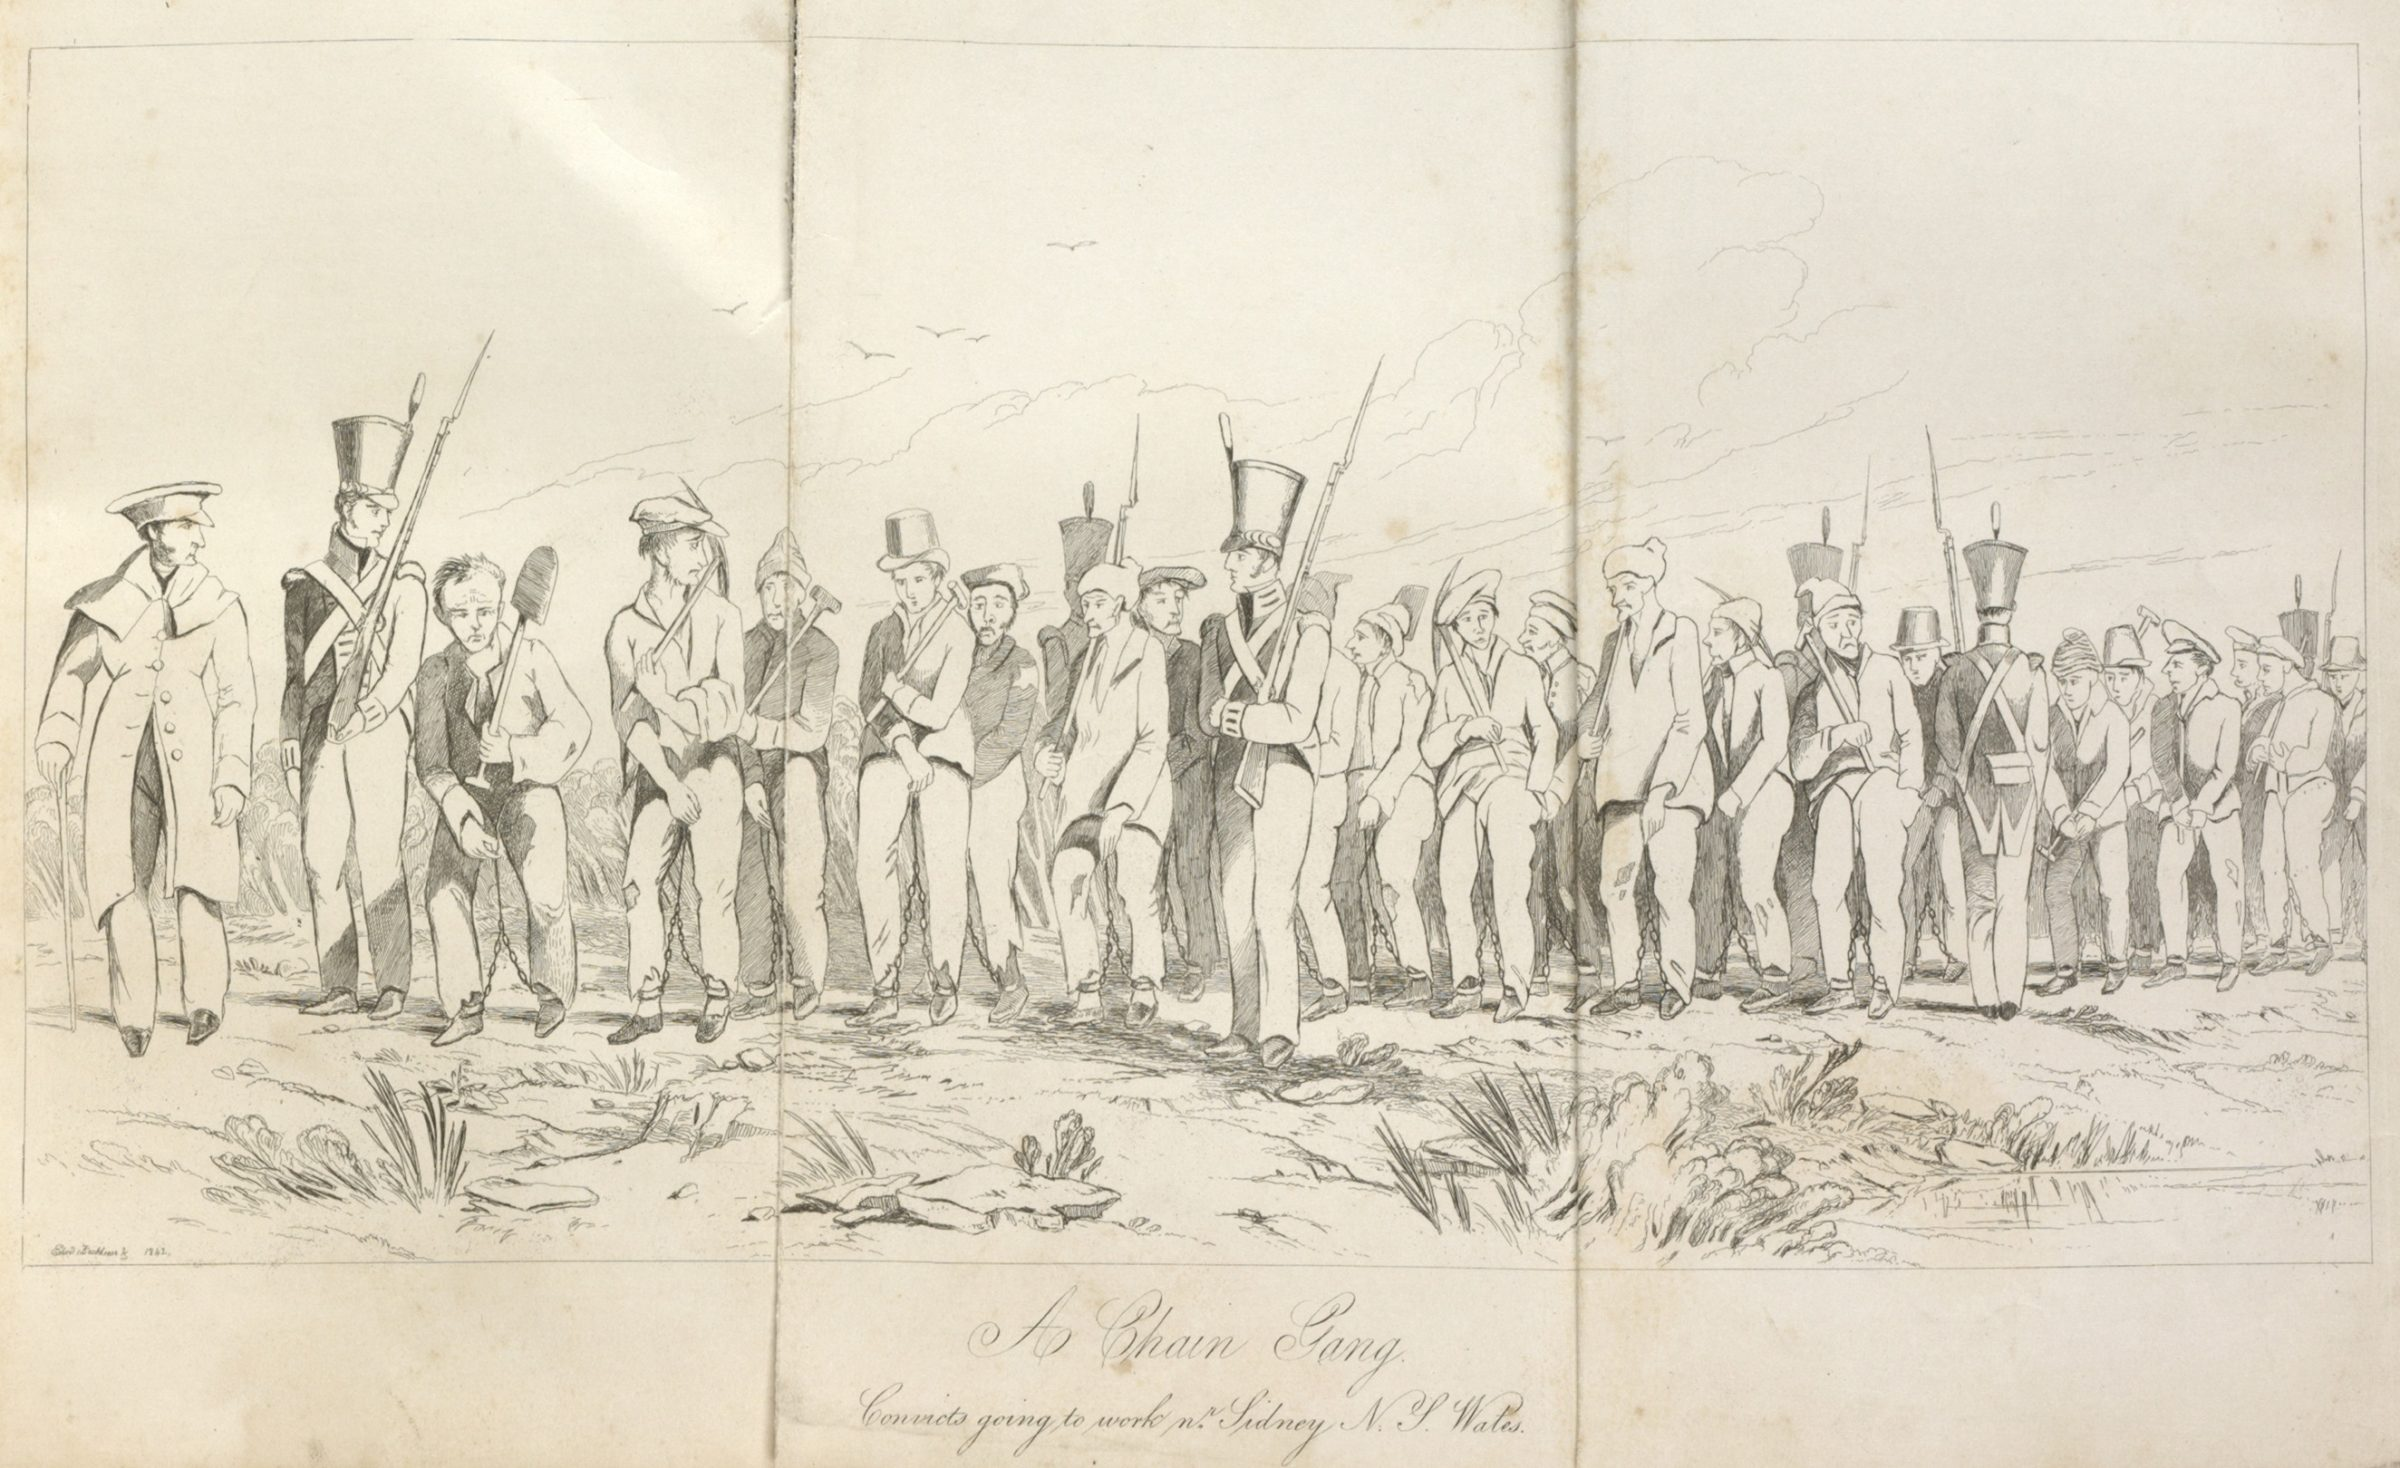 Convict men working in as part of an 'iron-gang'. Guarded by soldiers they are carrying the tools they need for the day's work. They are also wearing leg-chains.